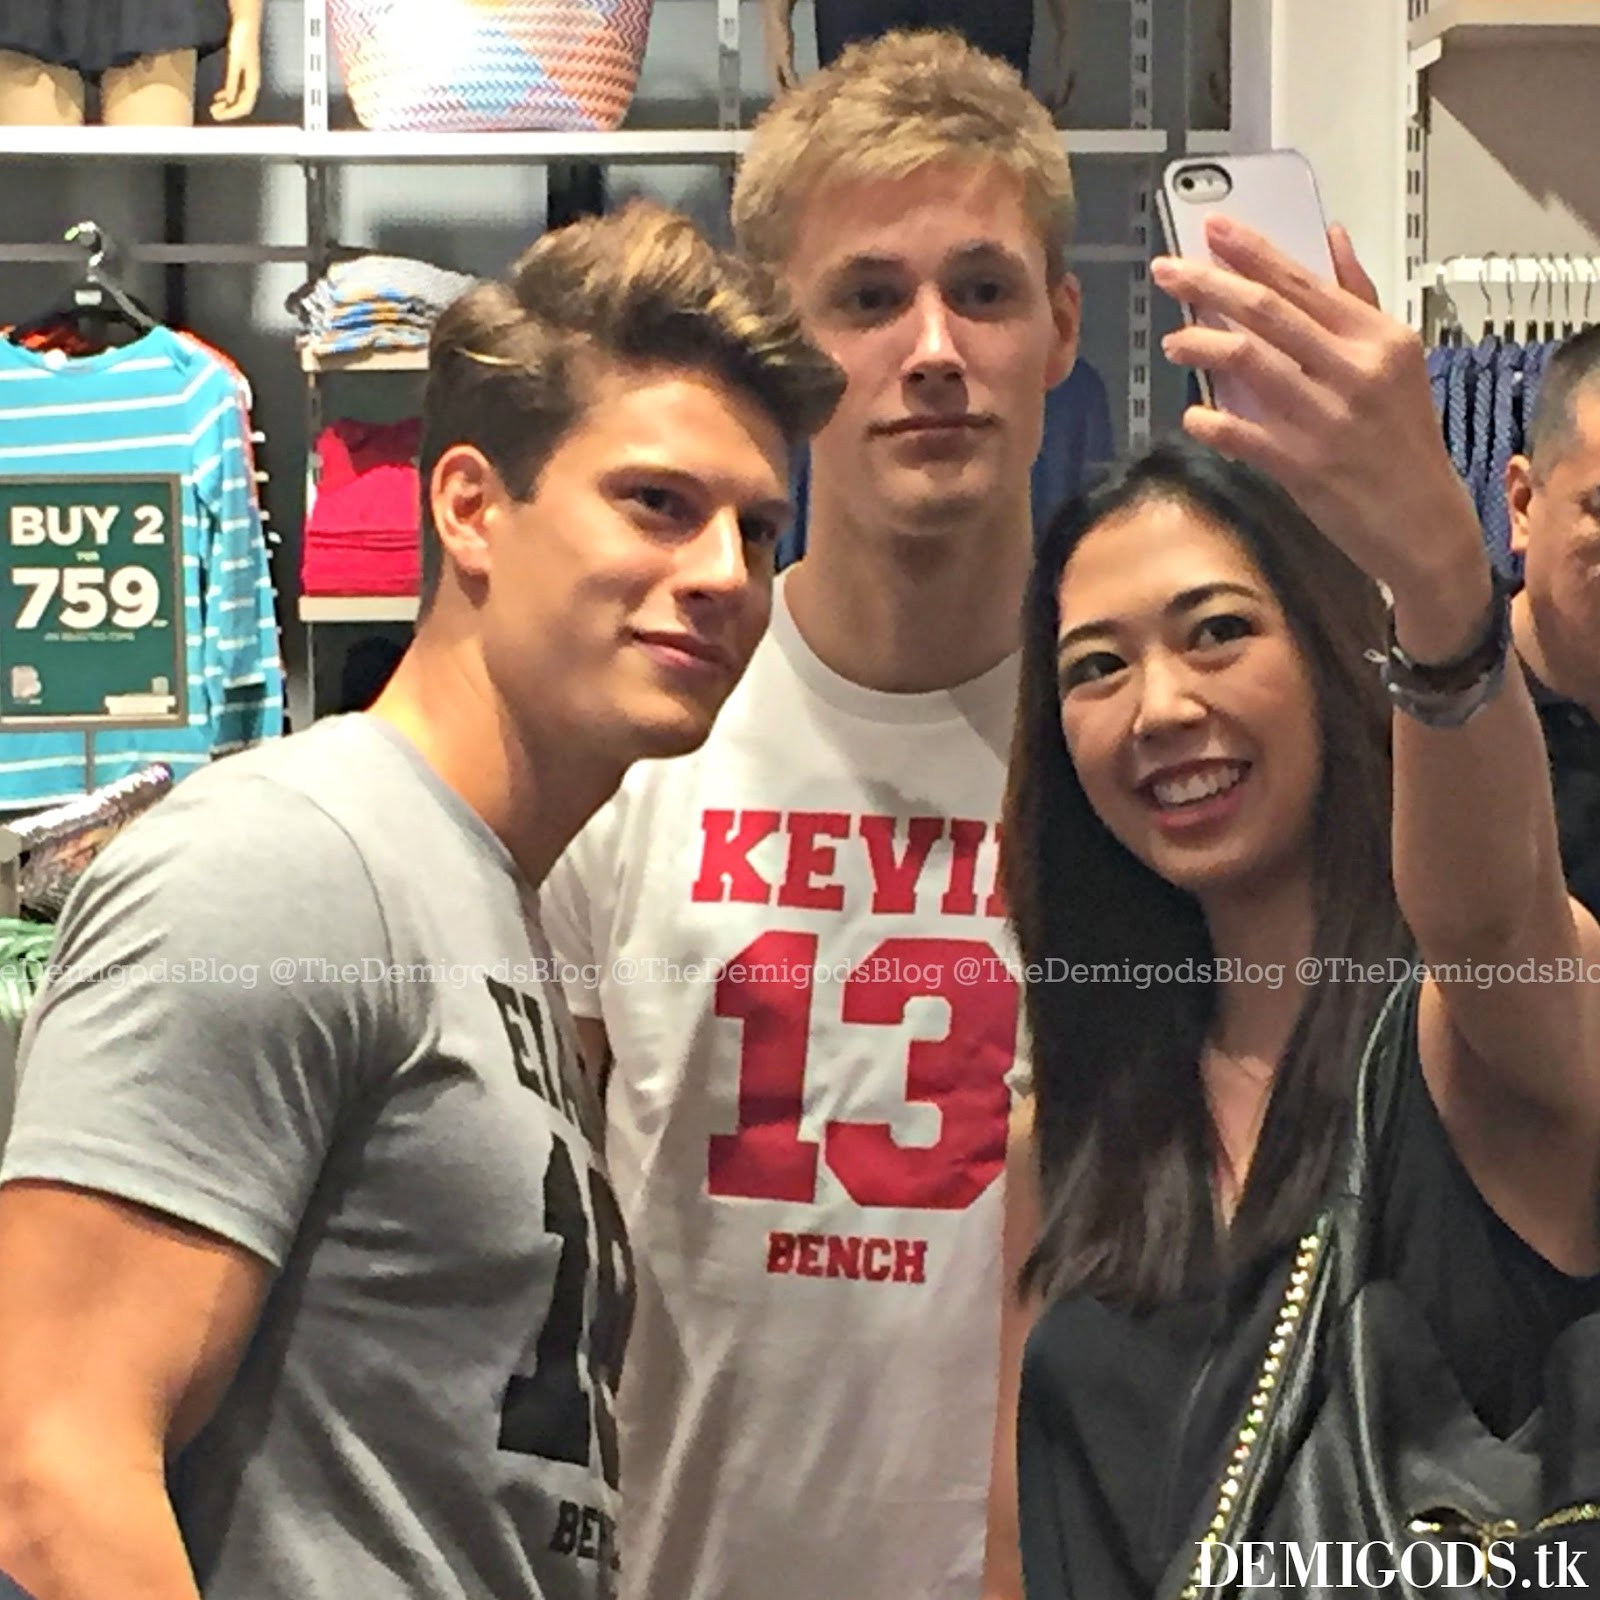 Demigods the bench meet and greet with river viiperi eian scully meet and greet was that it didnt require the fans to buy a specific amount of bench items to meet them you just have to go there and take pictures kristyandbryce Gallery